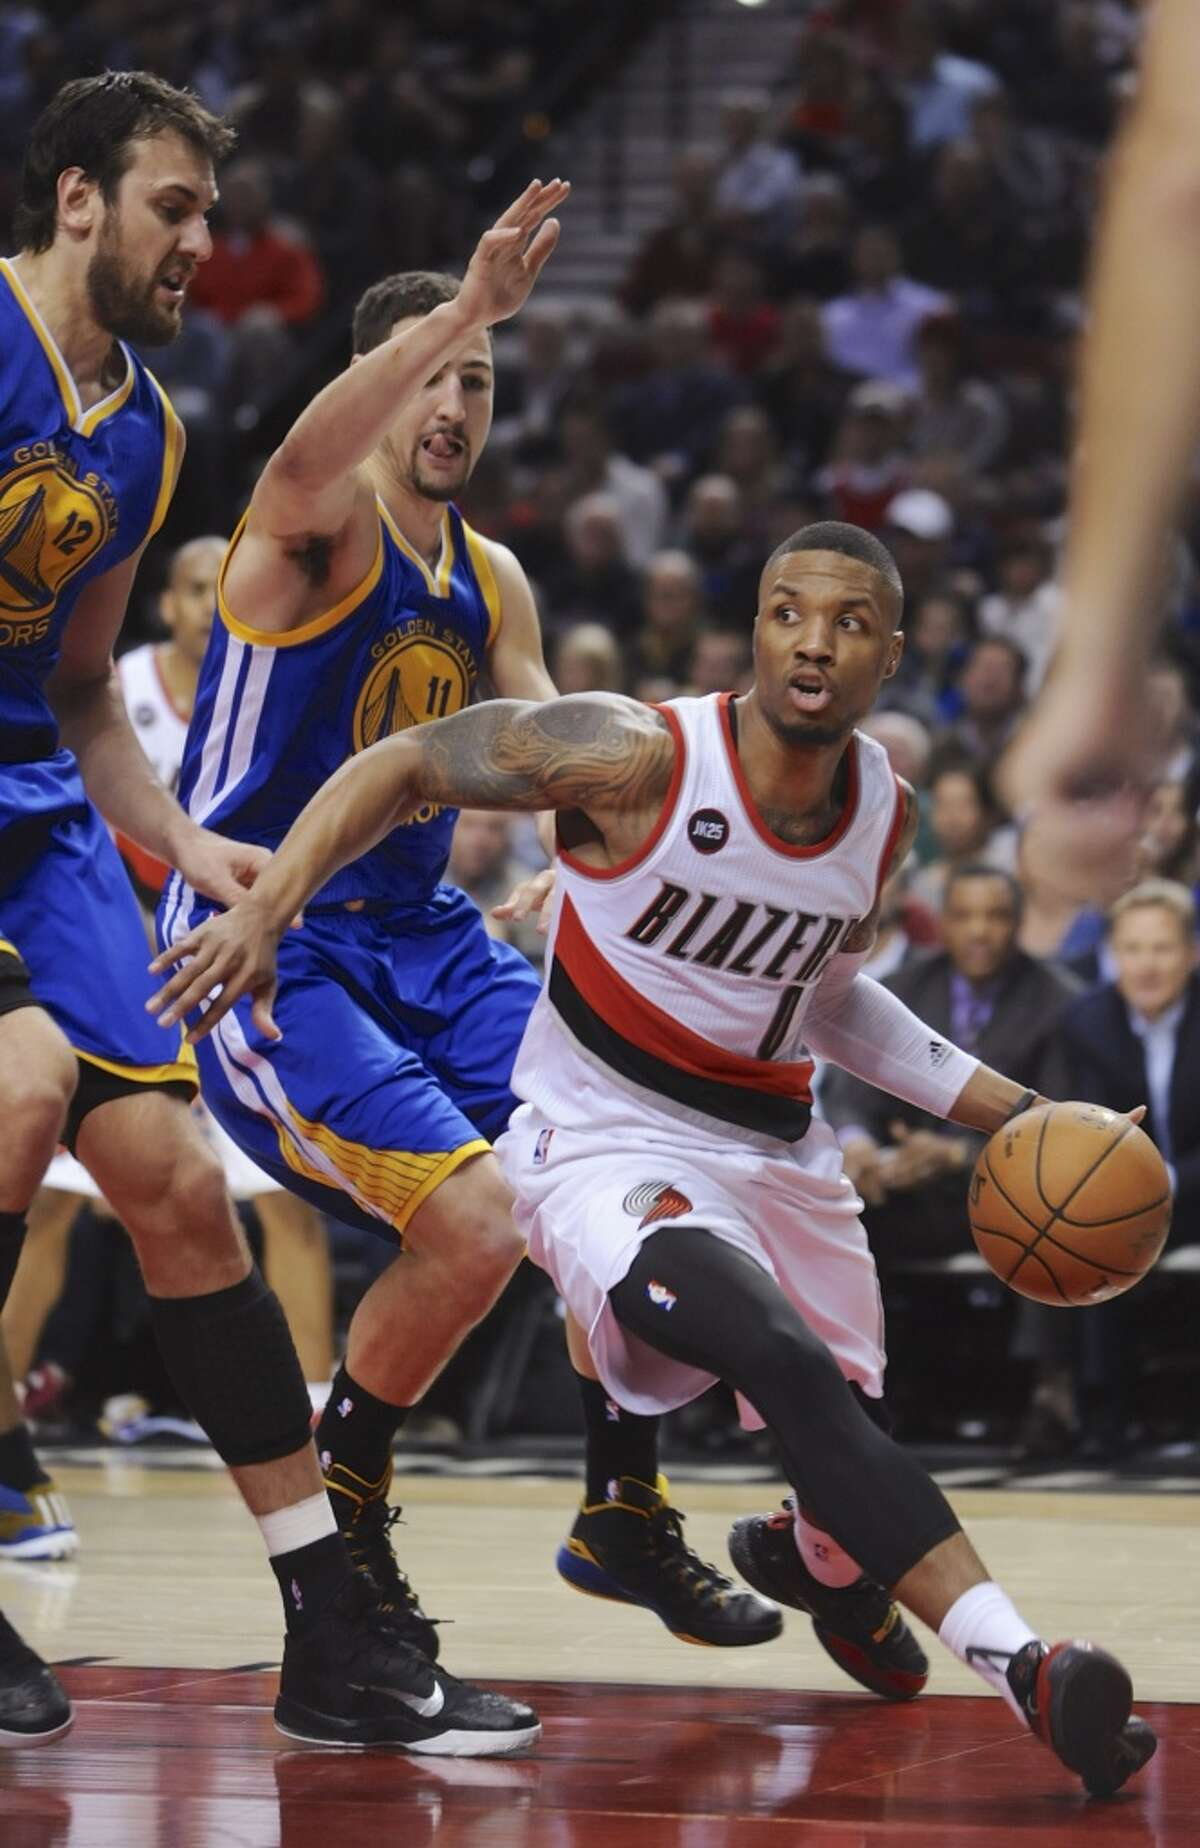 Portland Trail Blazers' Damian Lillard (0) drives against Golden State Warriors' Andrew Bogut, left, and Klay Thompson during the second half of an NBA basketball game in Portland, Ore., Tuesday, March 24, 2015.